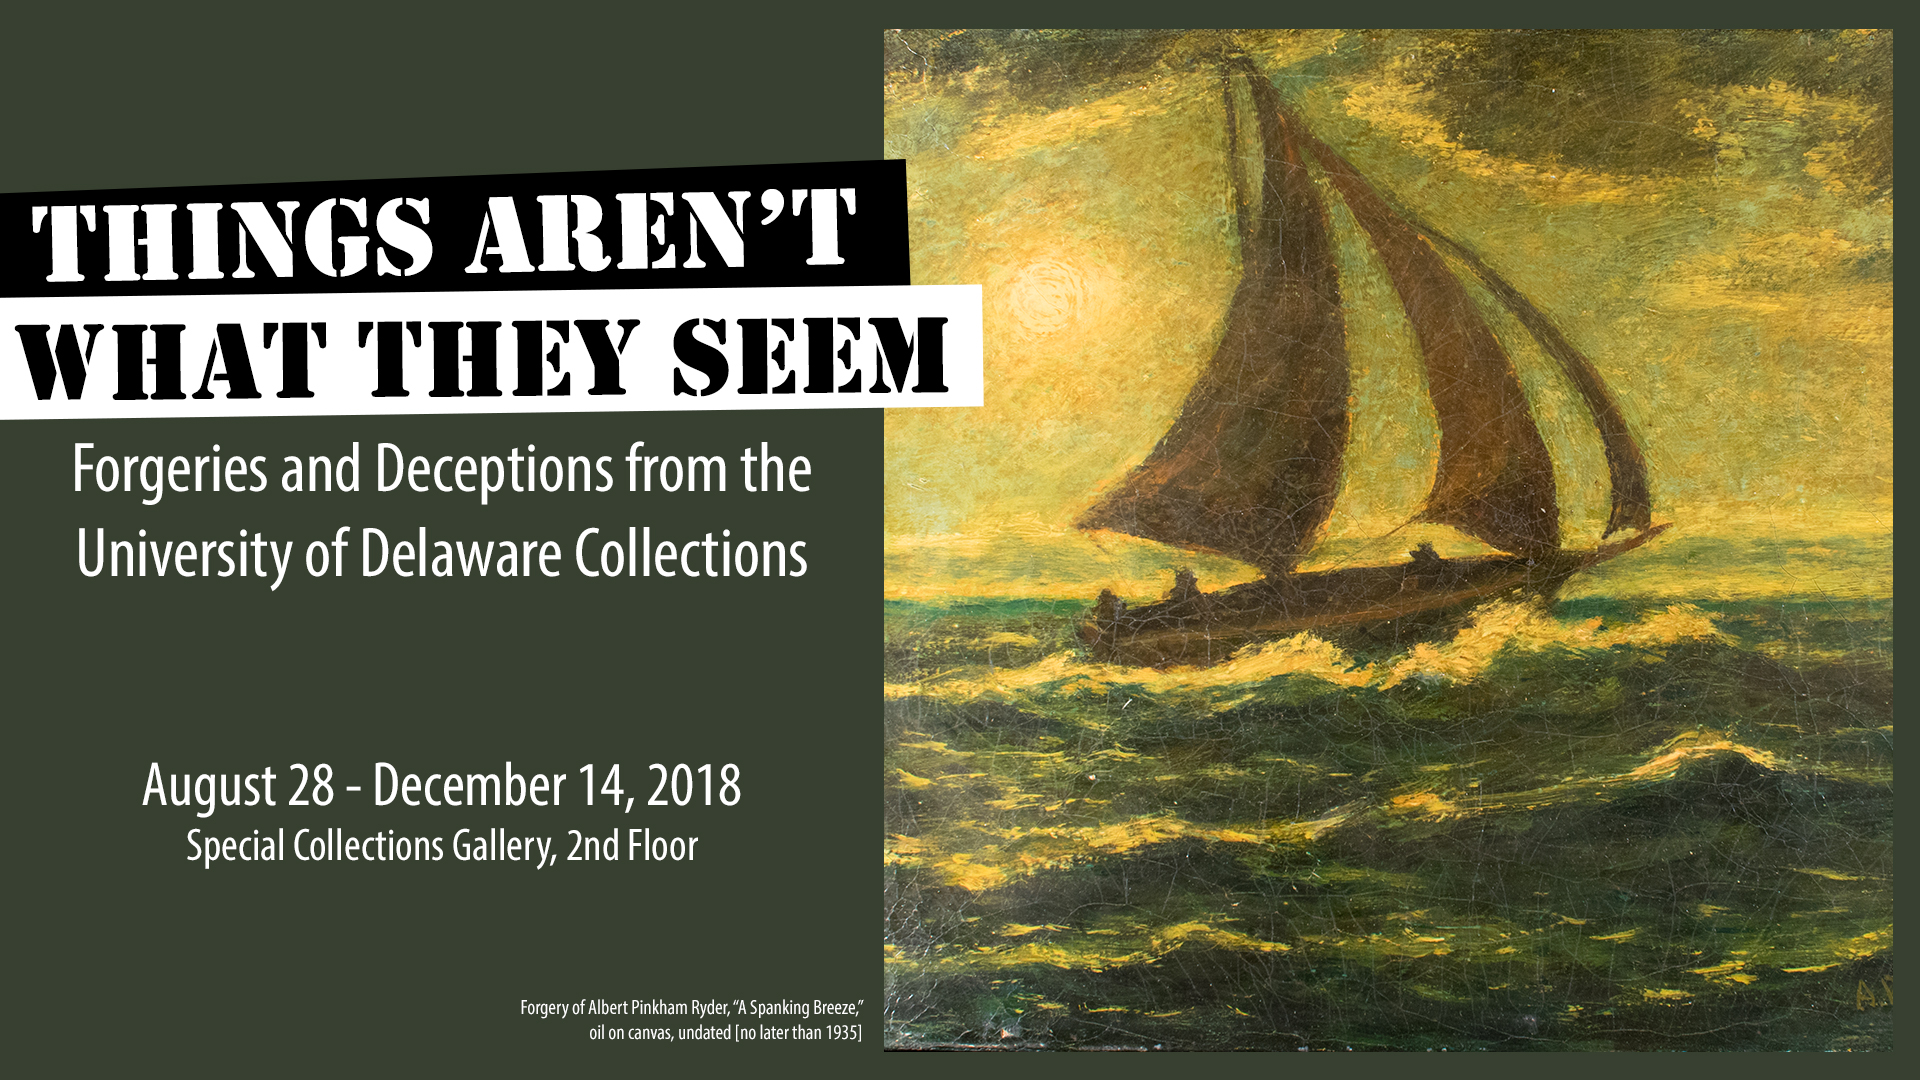 Things Aren't What They Seem: Forgeries and Deceptions From the University of Delaware Collections